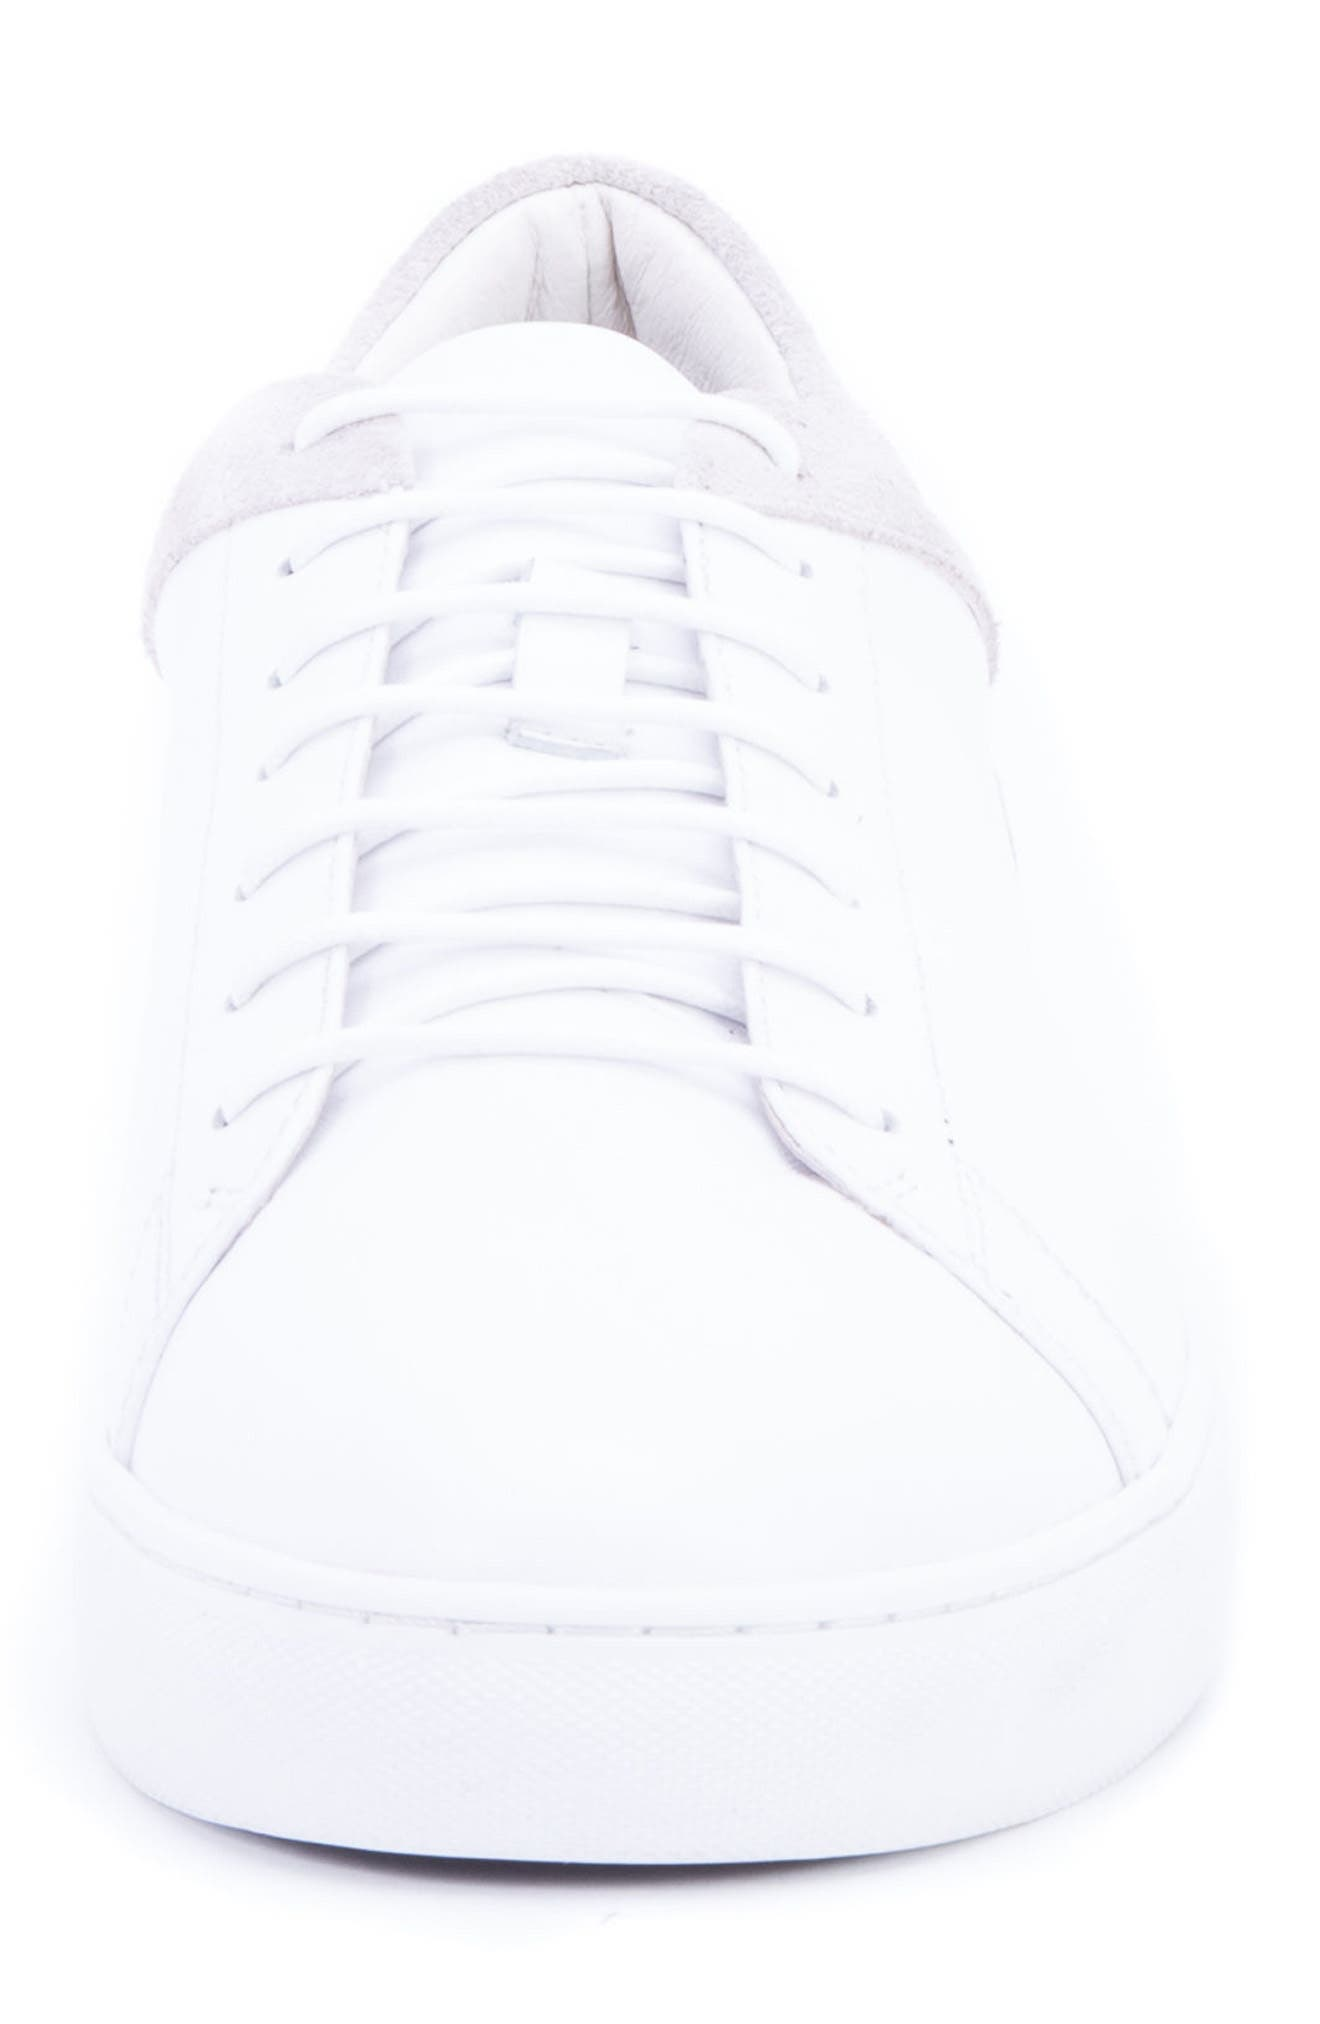 Cue Low Top Sneaker,                             Alternate thumbnail 4, color,                             WHITE LEATHER/ SUEDE